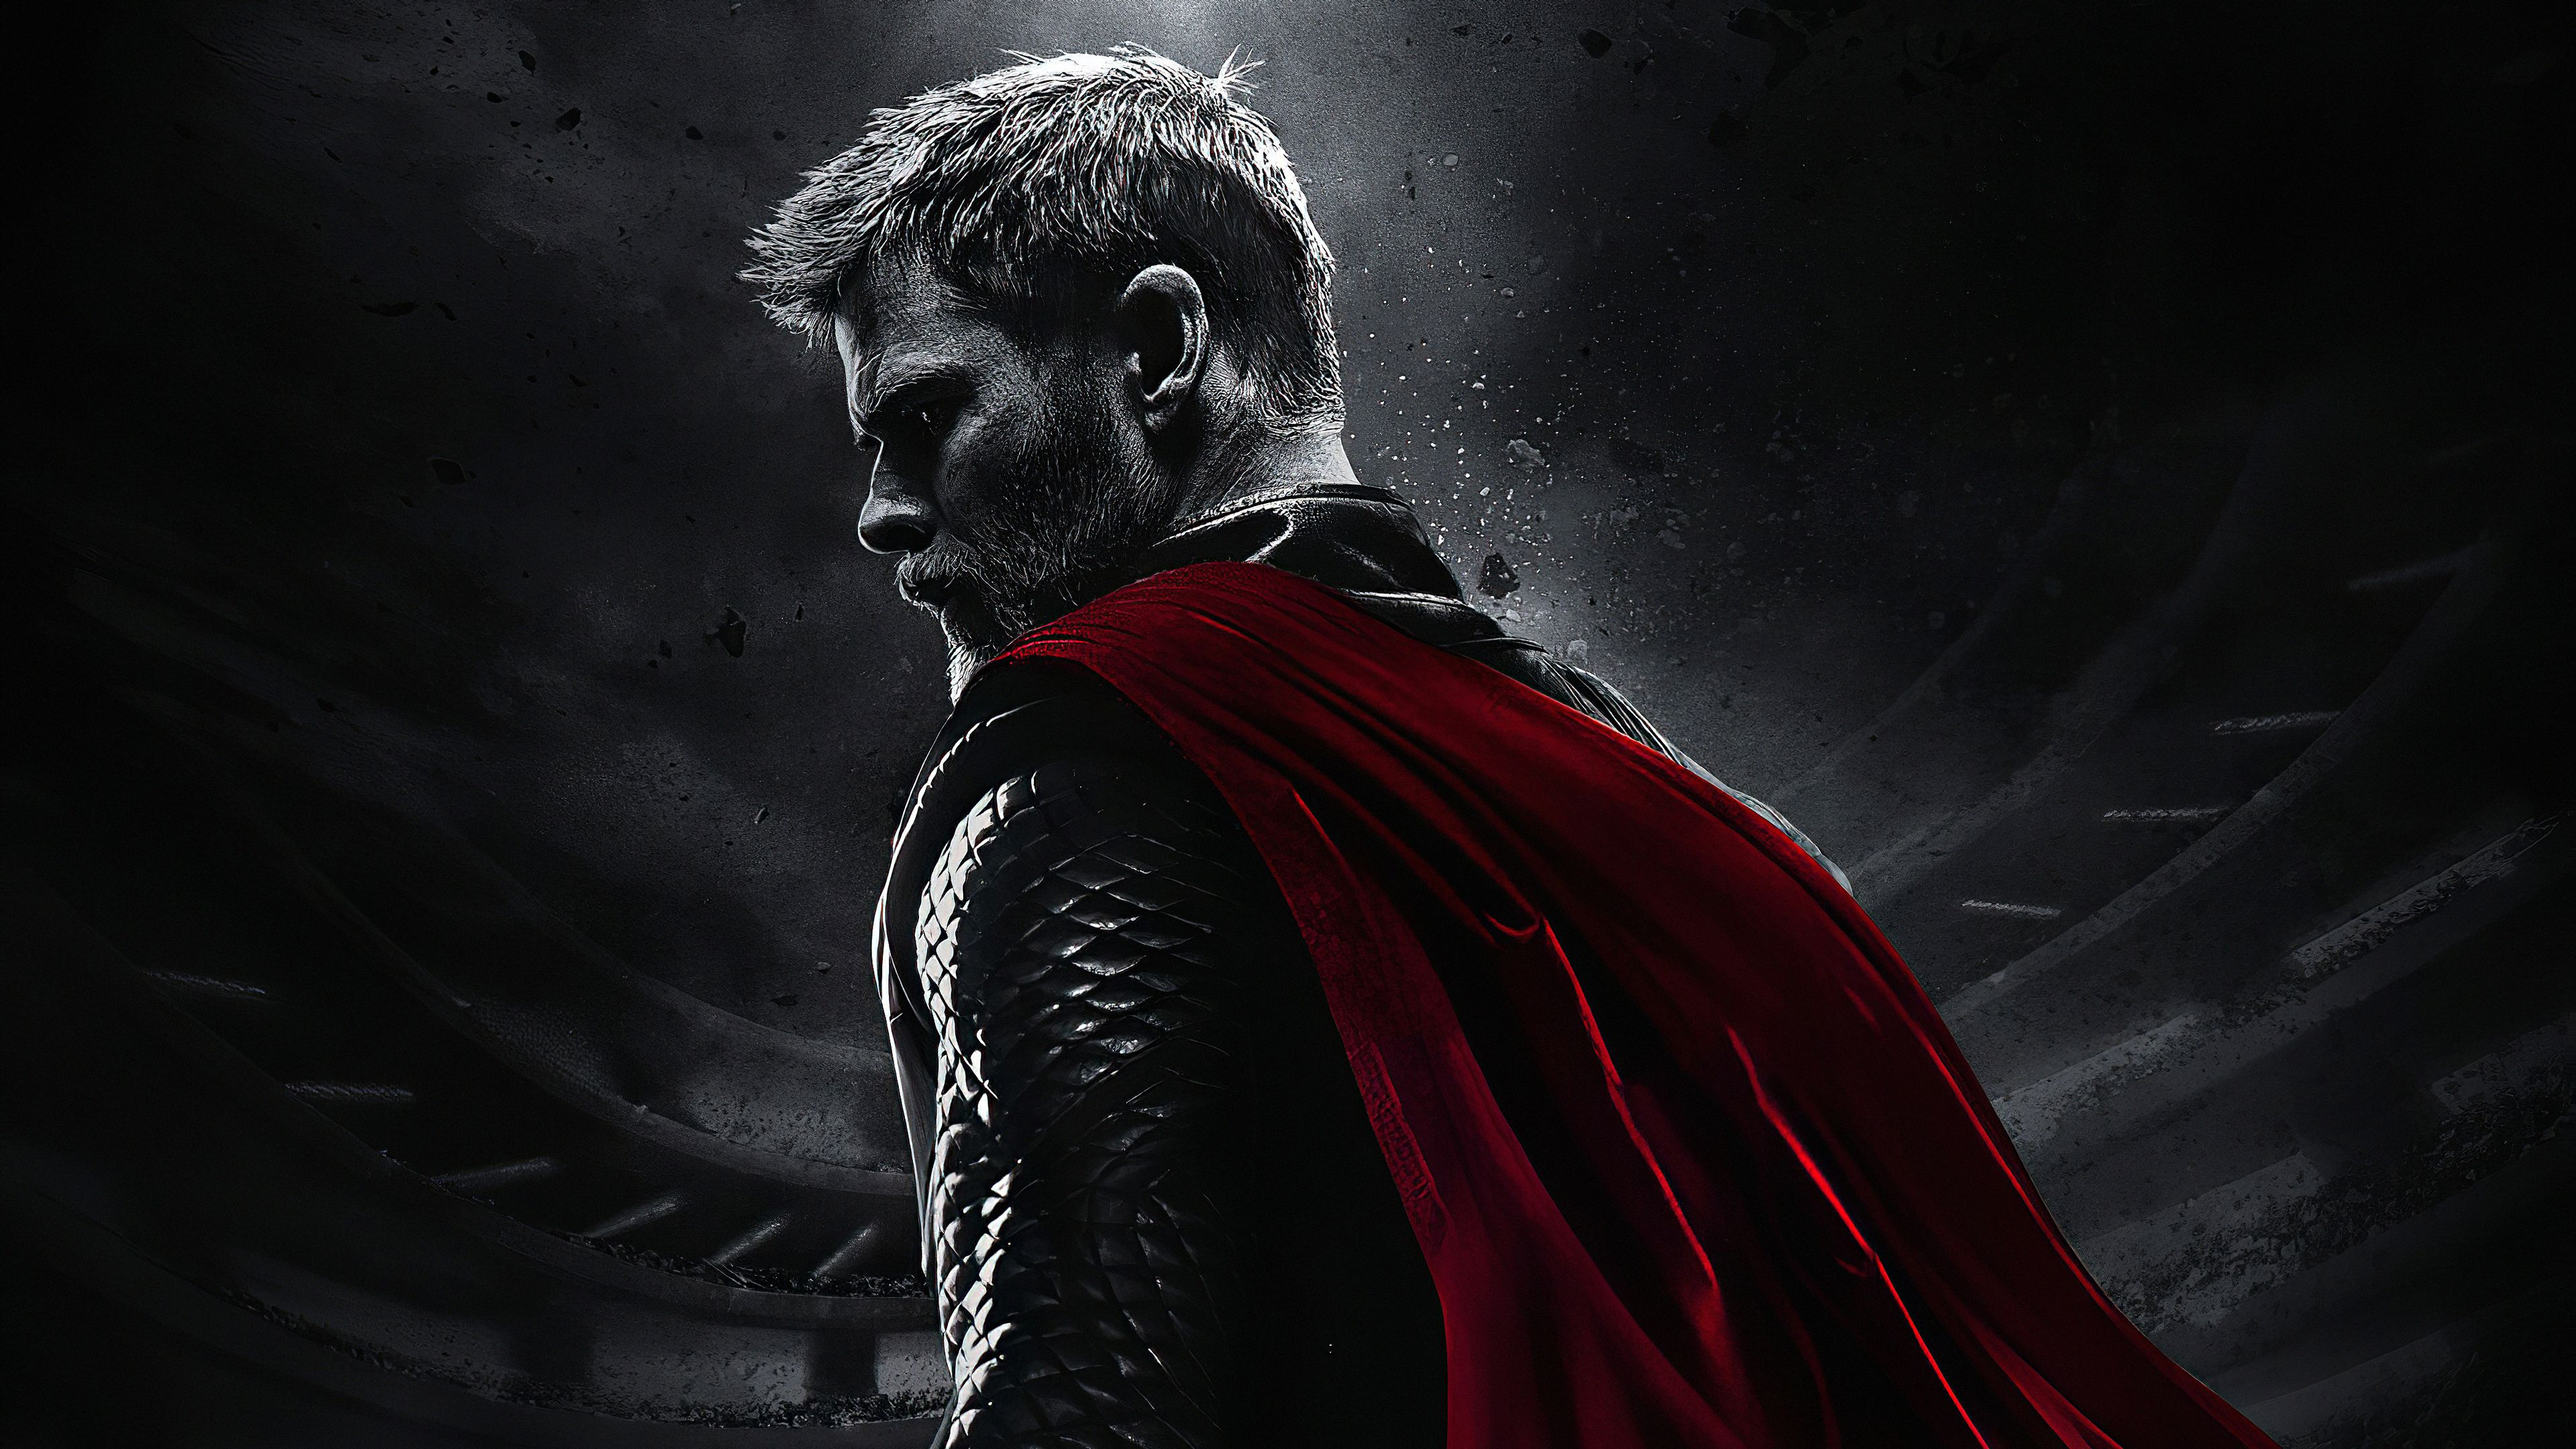 Thor Love And Thunder 2021 Thor Love And Thunder Movie Wallpaper 4k Thor Wallpaper Movie Wallpapers Thunder Movie